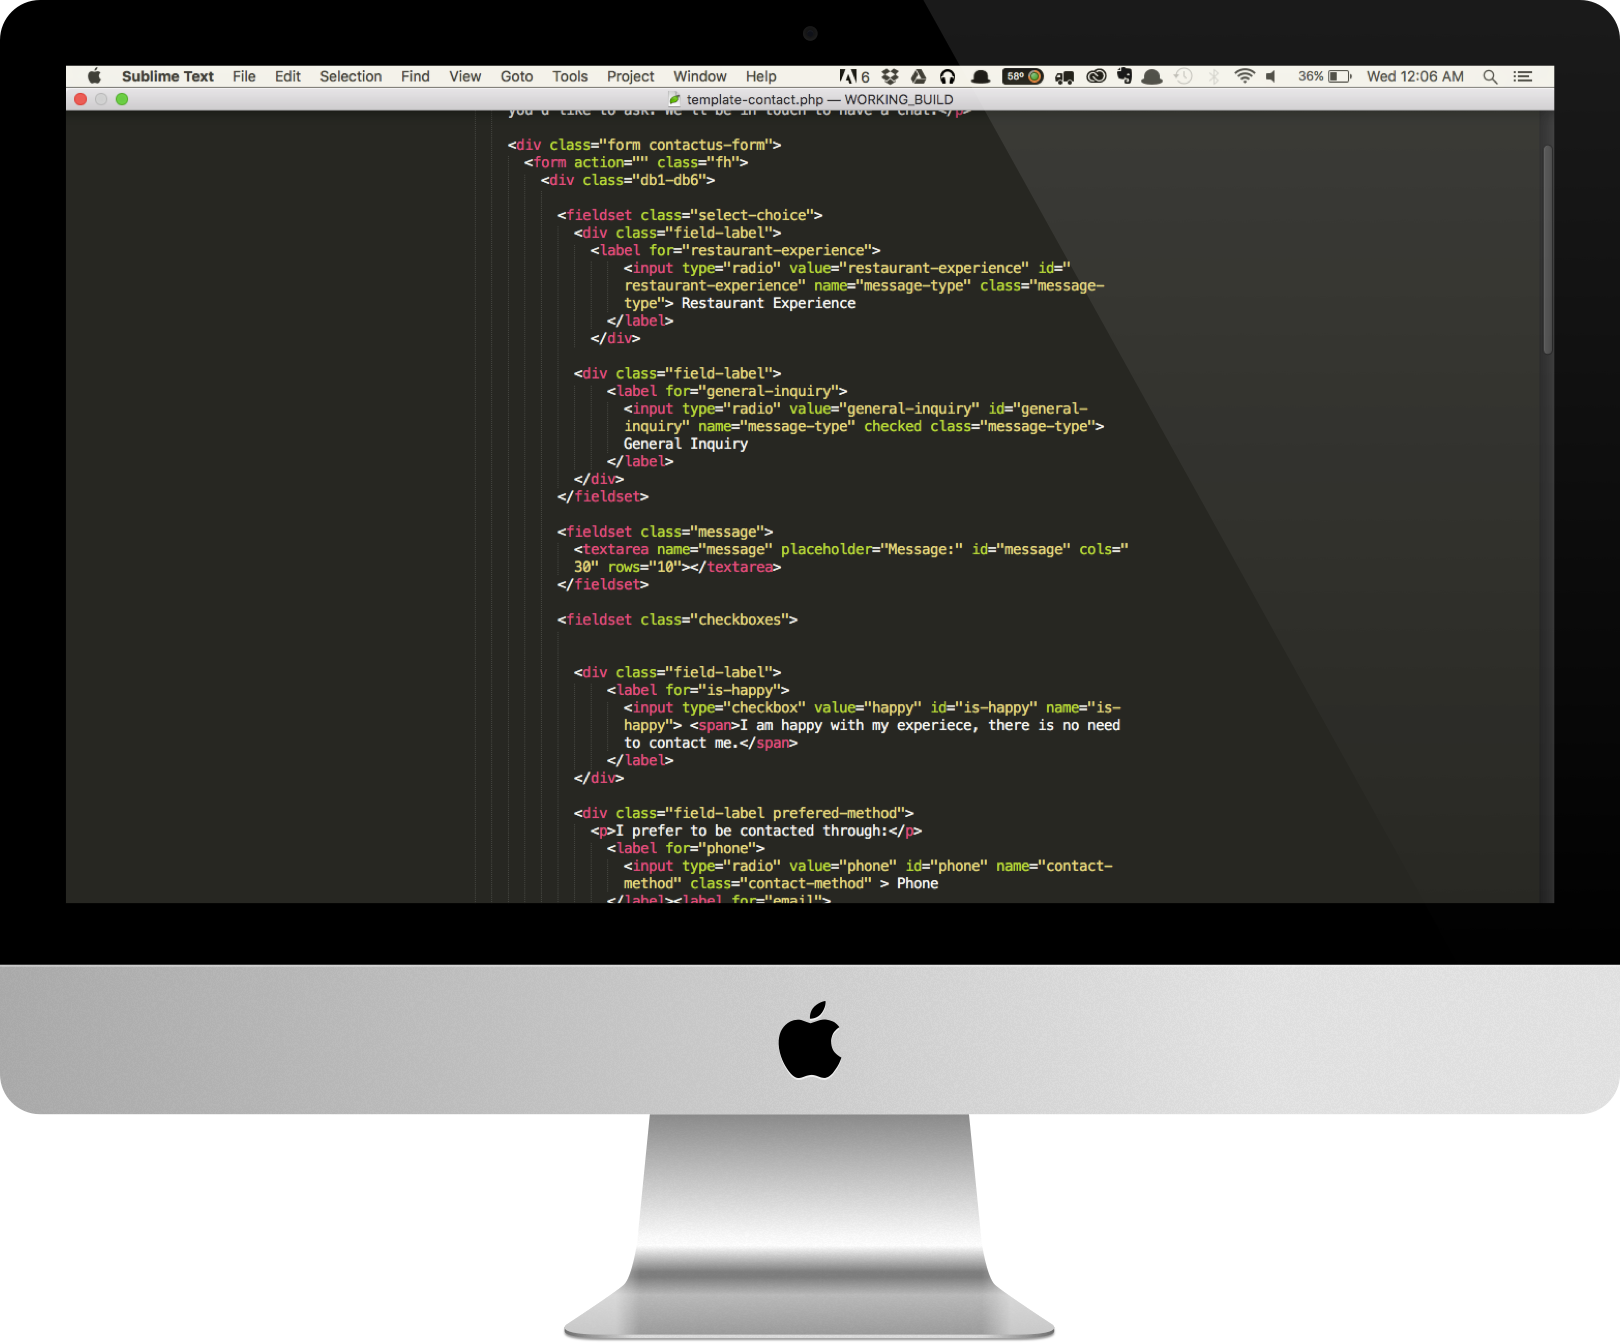 Code being viewed on an iMac